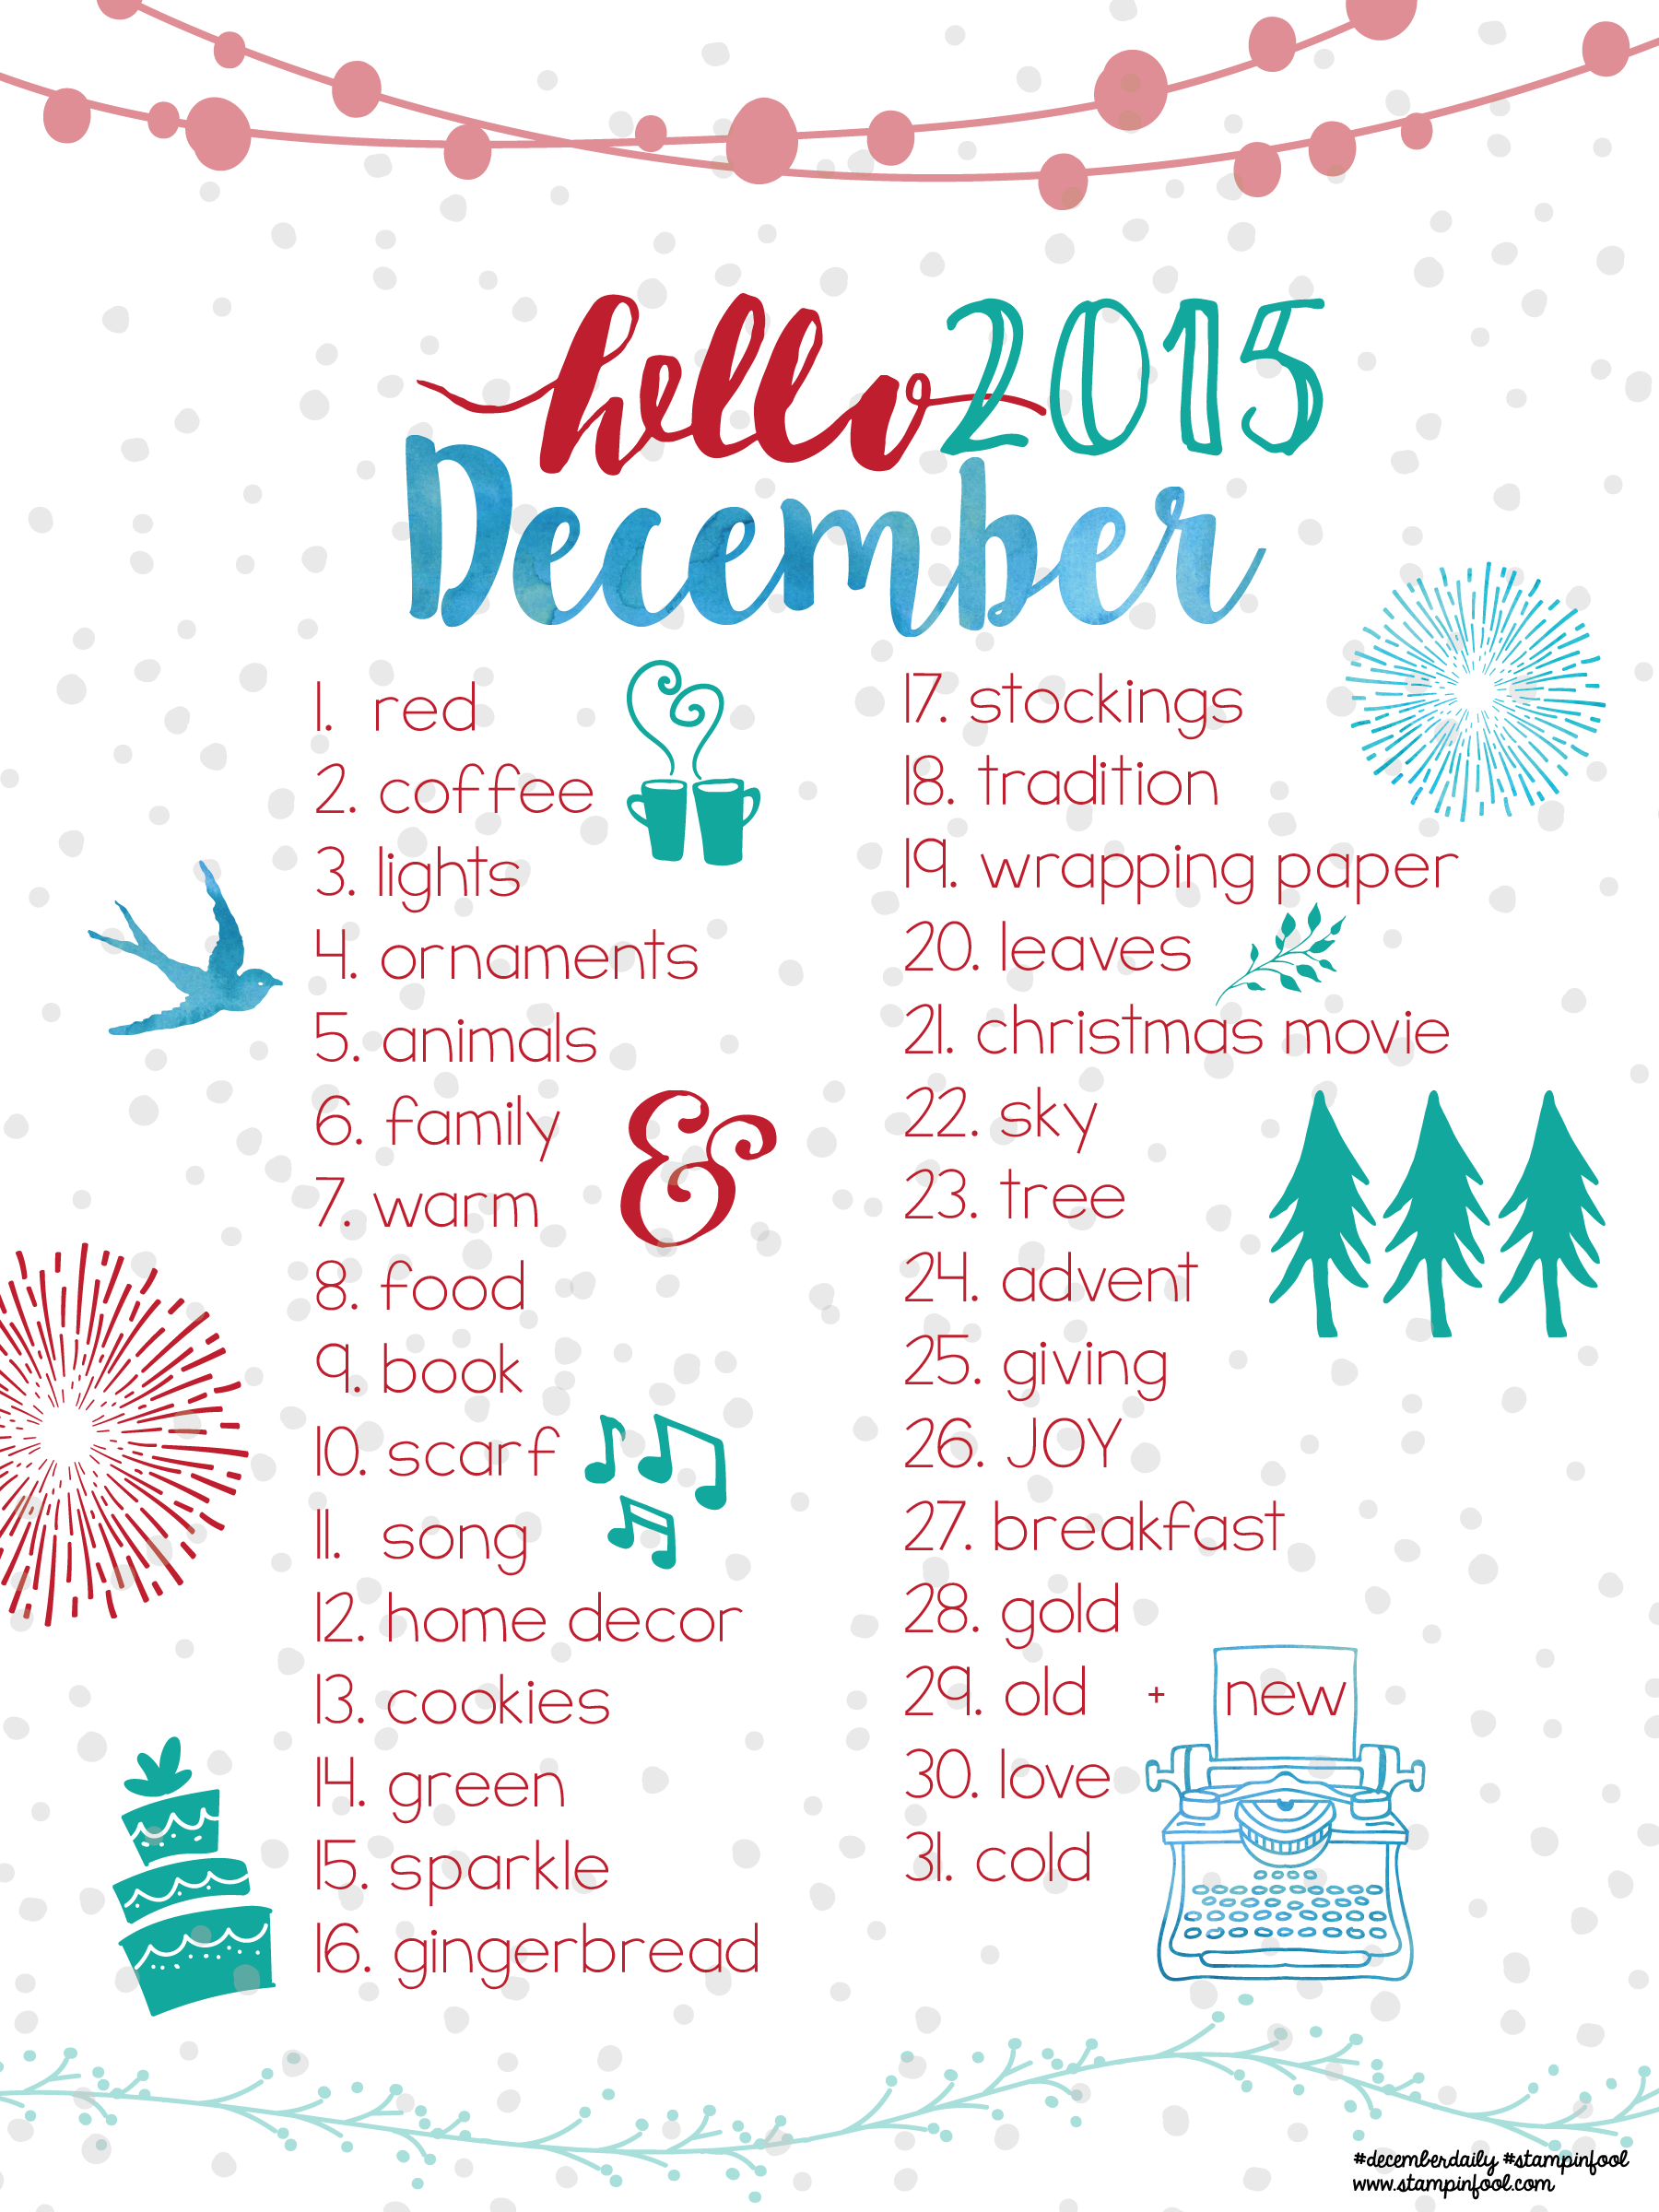 Hello December & Project Life: Documenting December Daily Guide